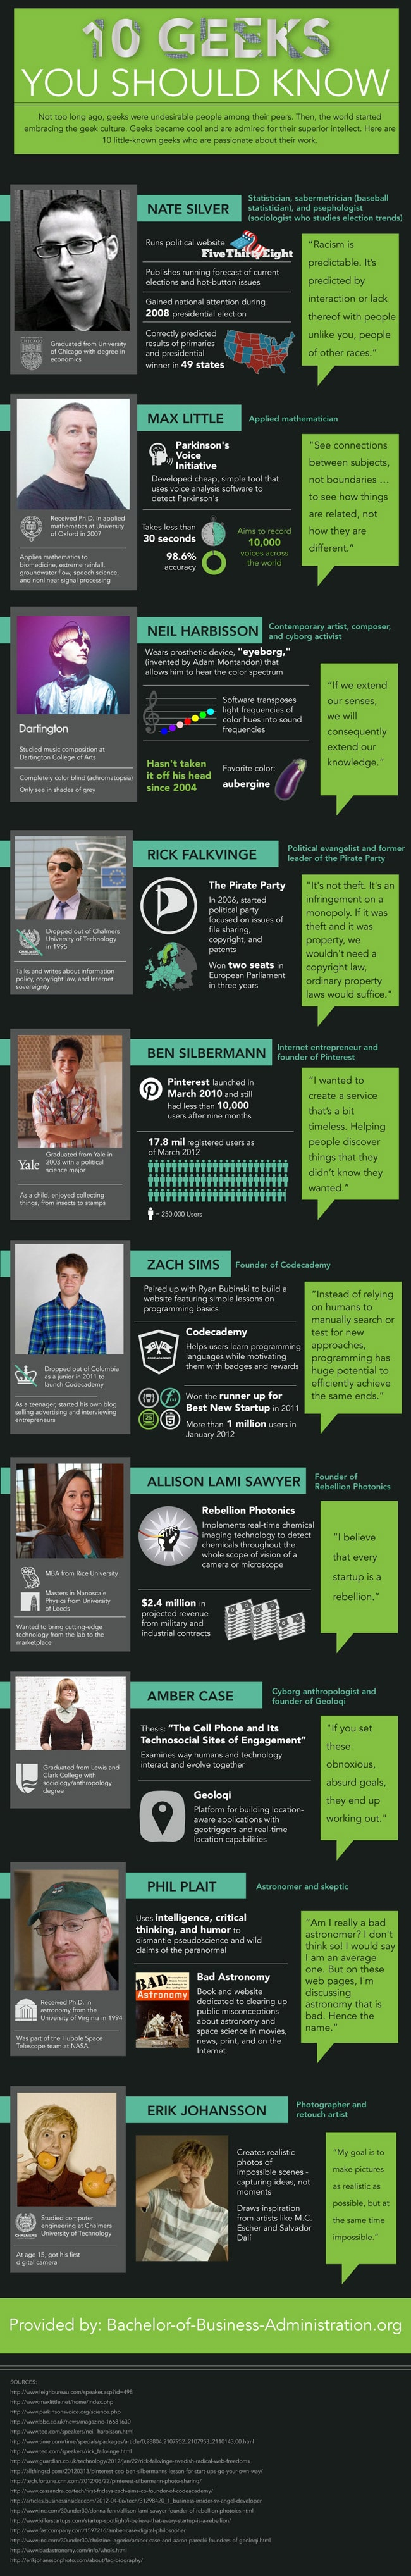 10 Geeks You Should Know About [Infographic]